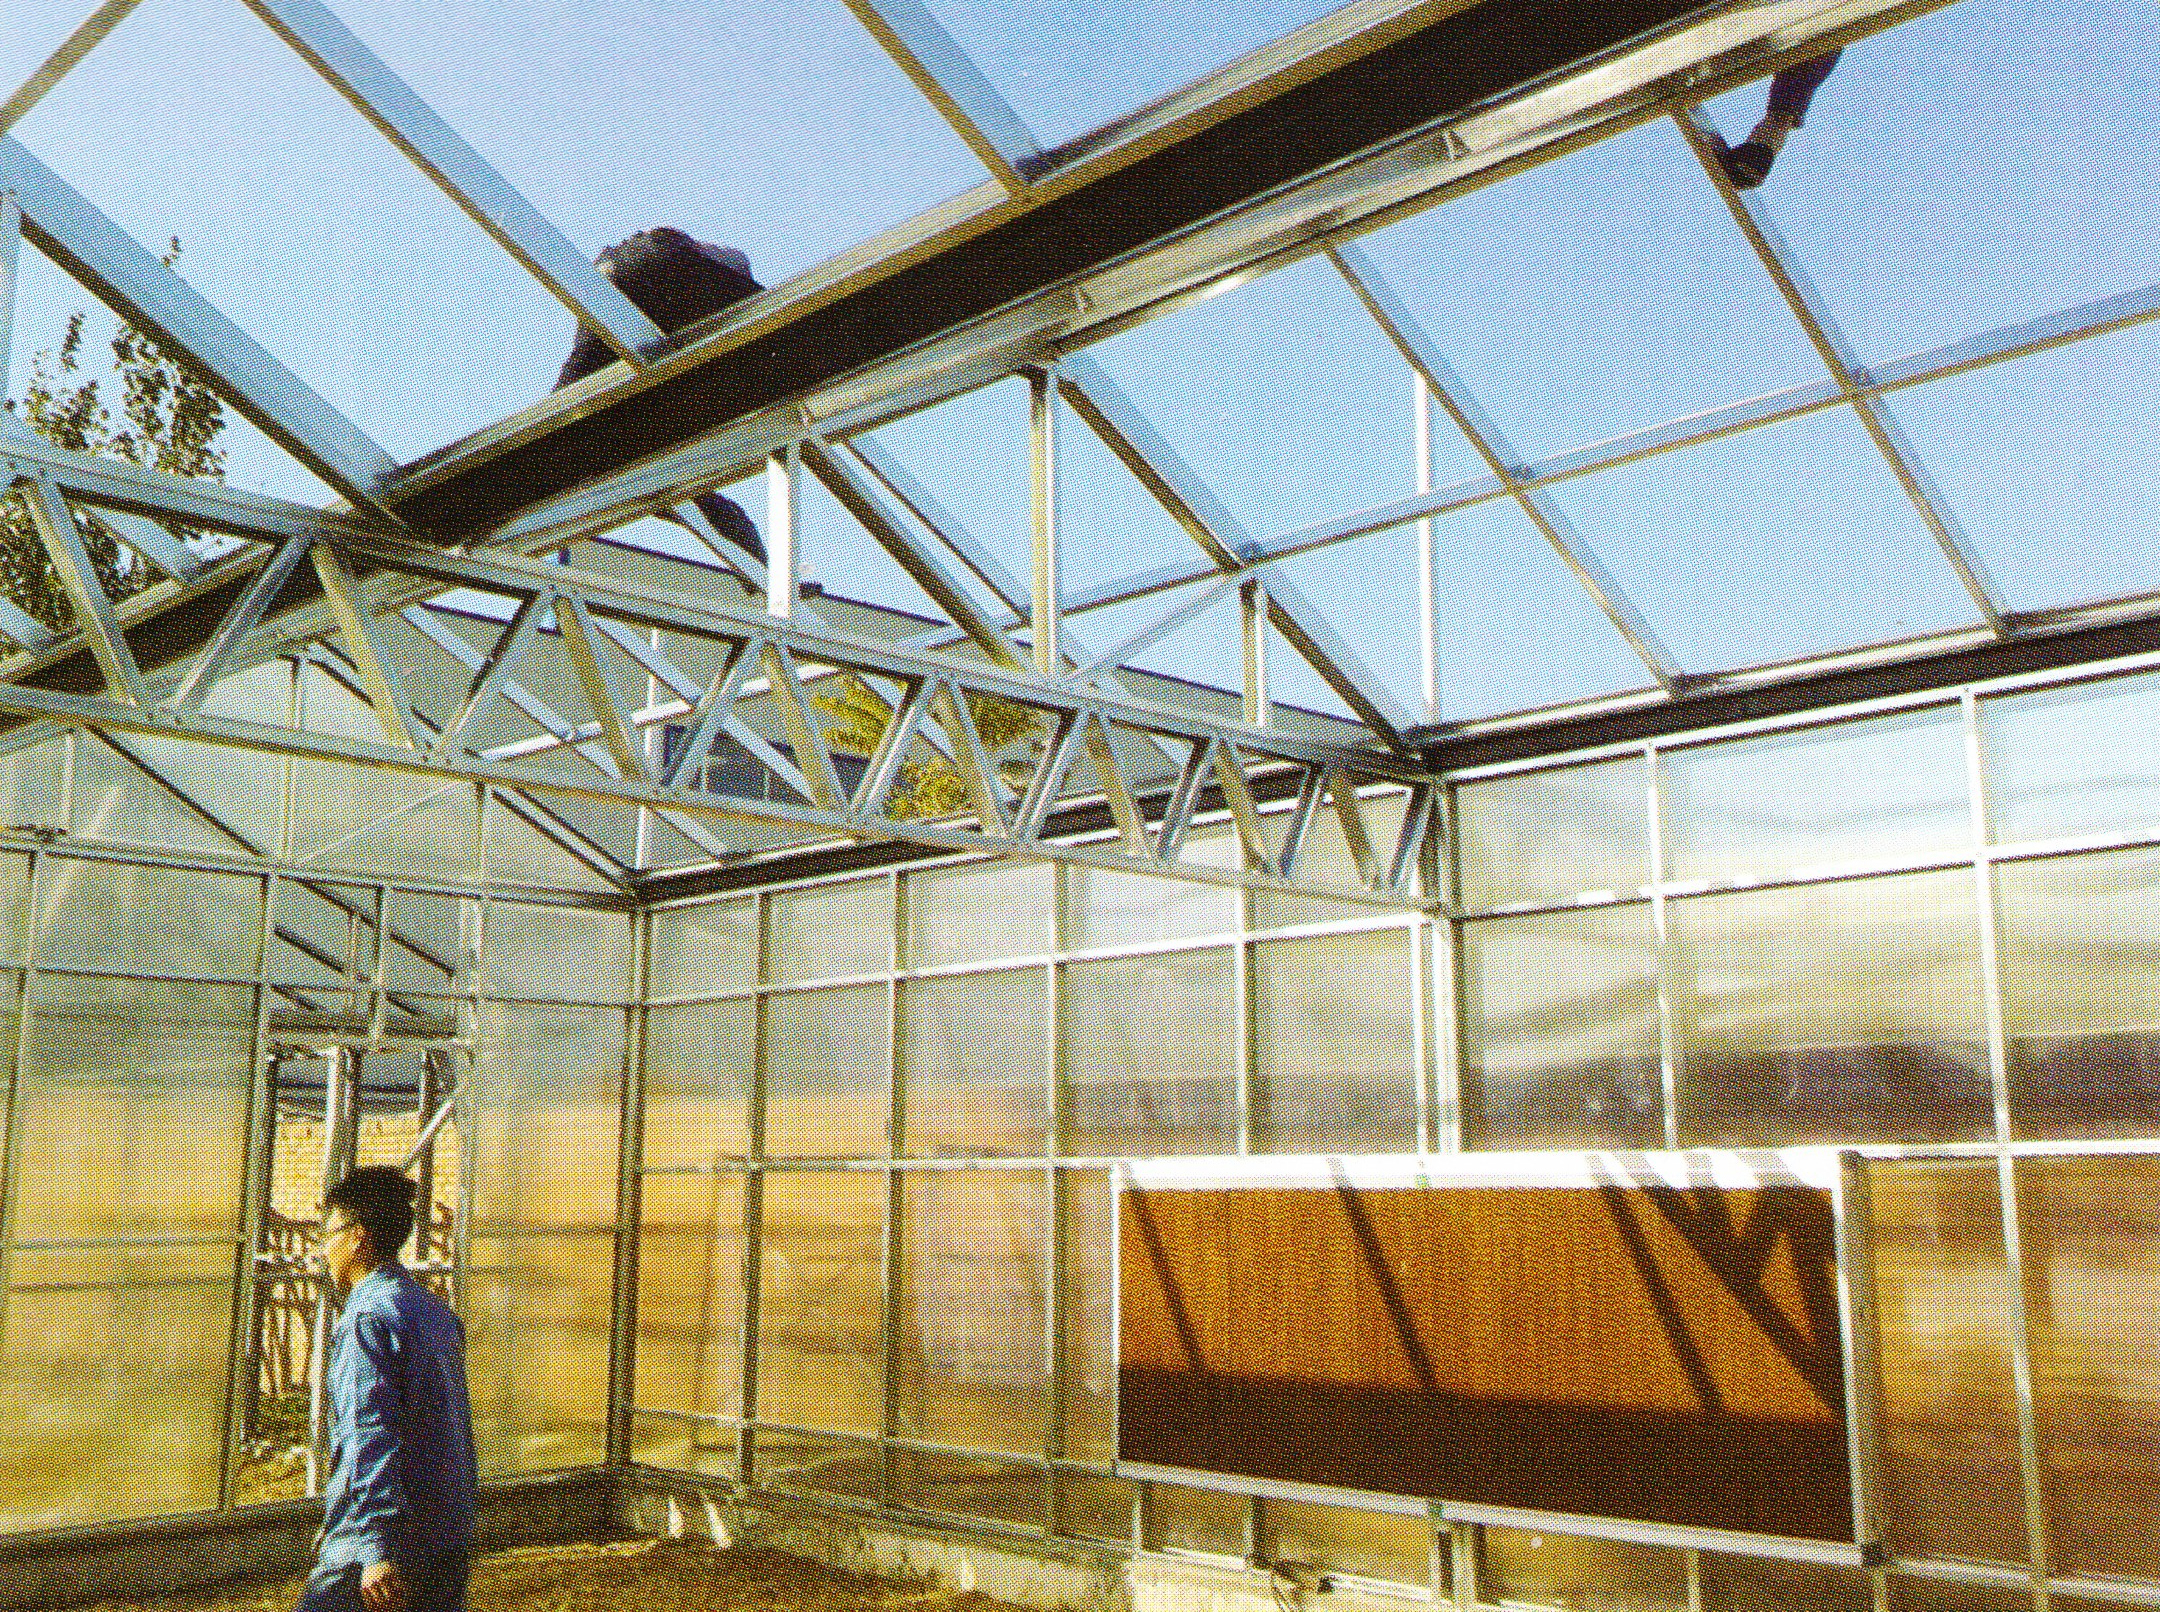 Sunlight Greenhouse 04